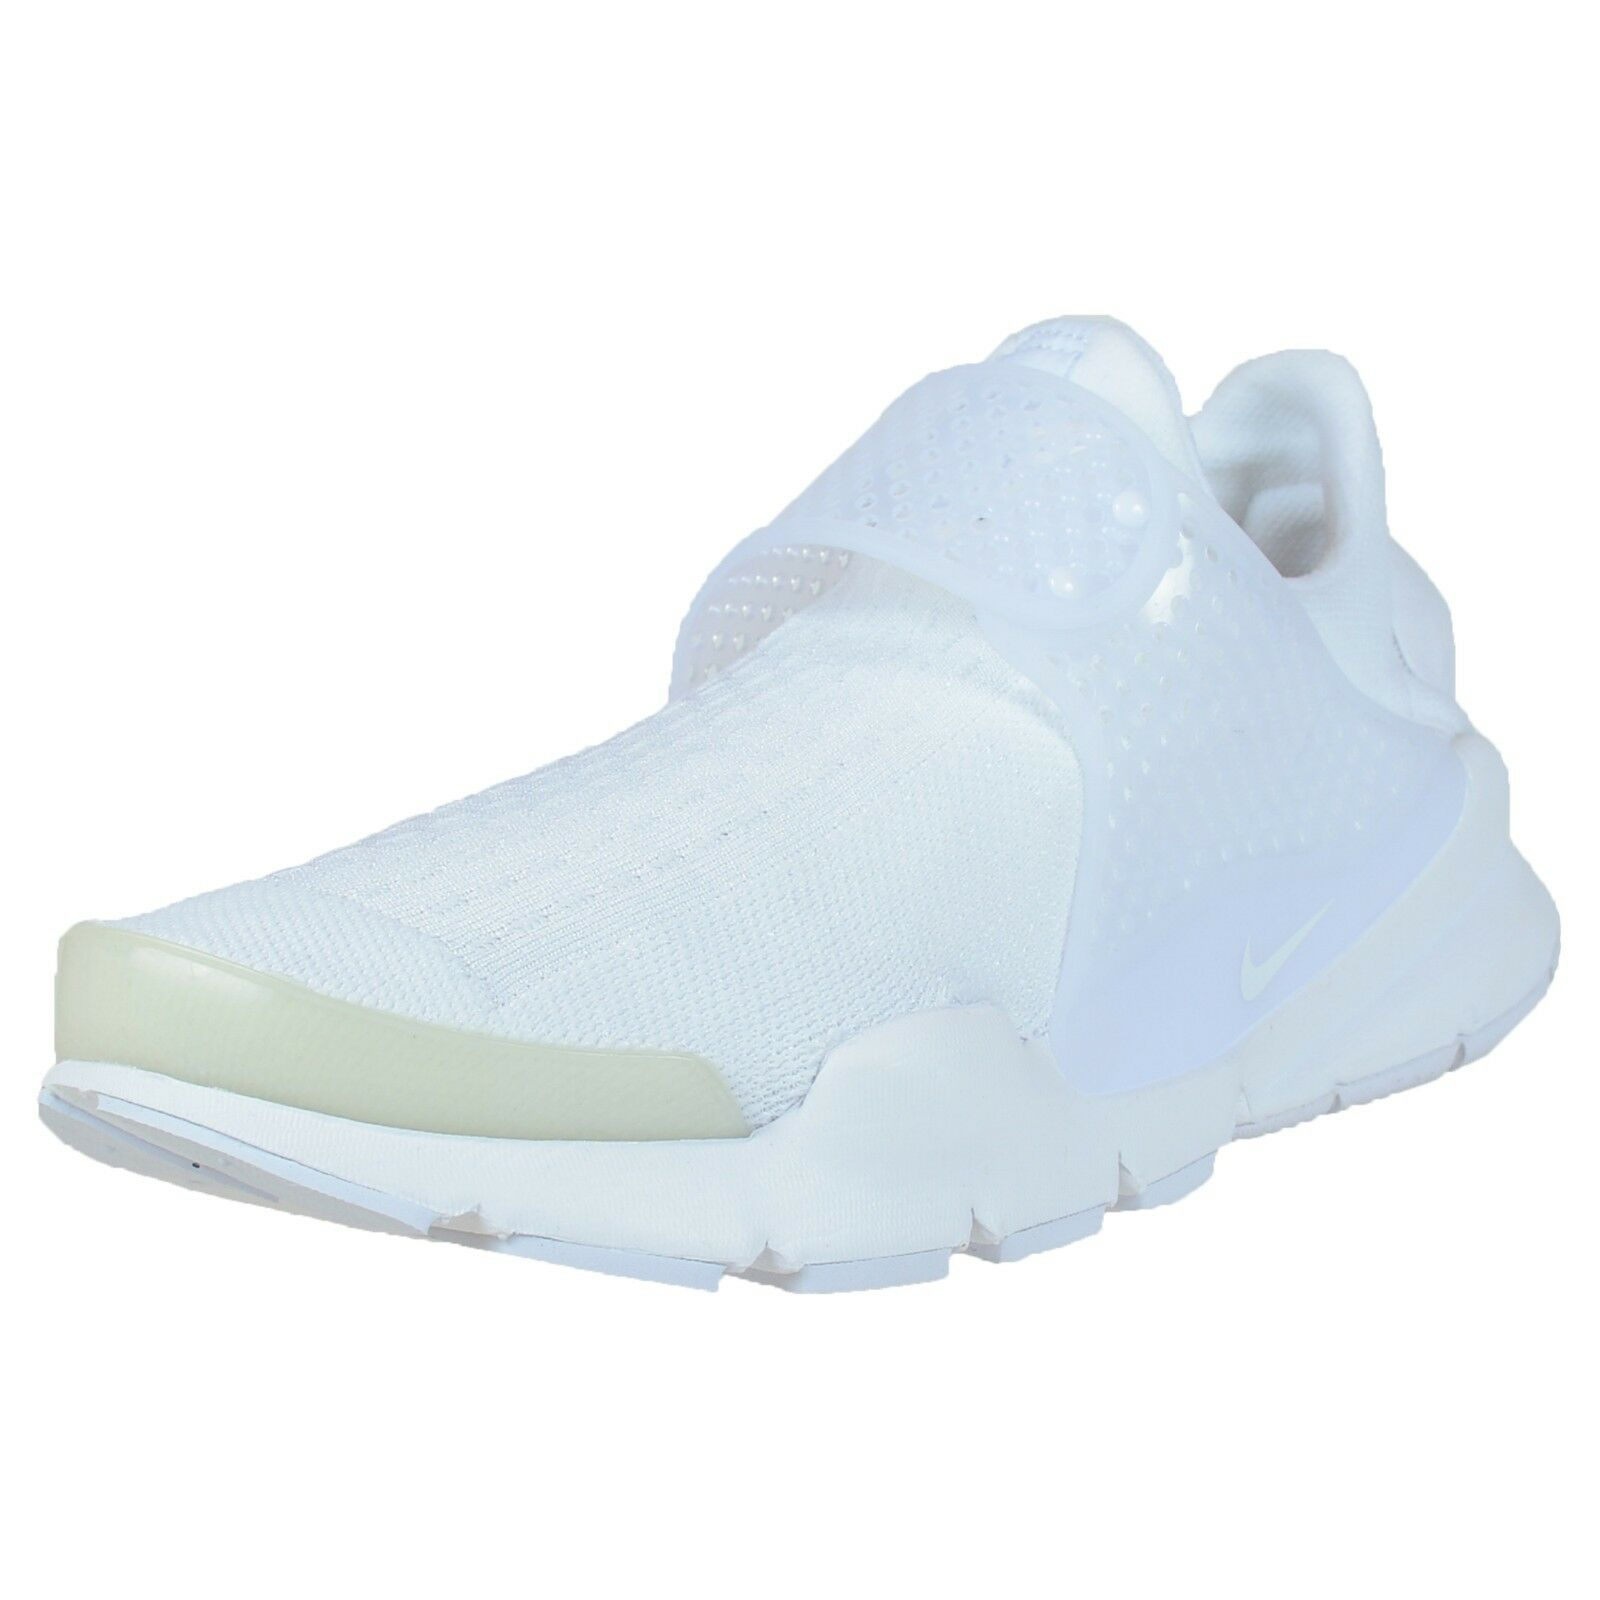 info for 259ea b5584 NIKE SOCK DART KJCRD WHITE BLACK MENS BREATHABLE CASUAL CASUAL CASUAL  RUNNING 819686 100 9ac7a8